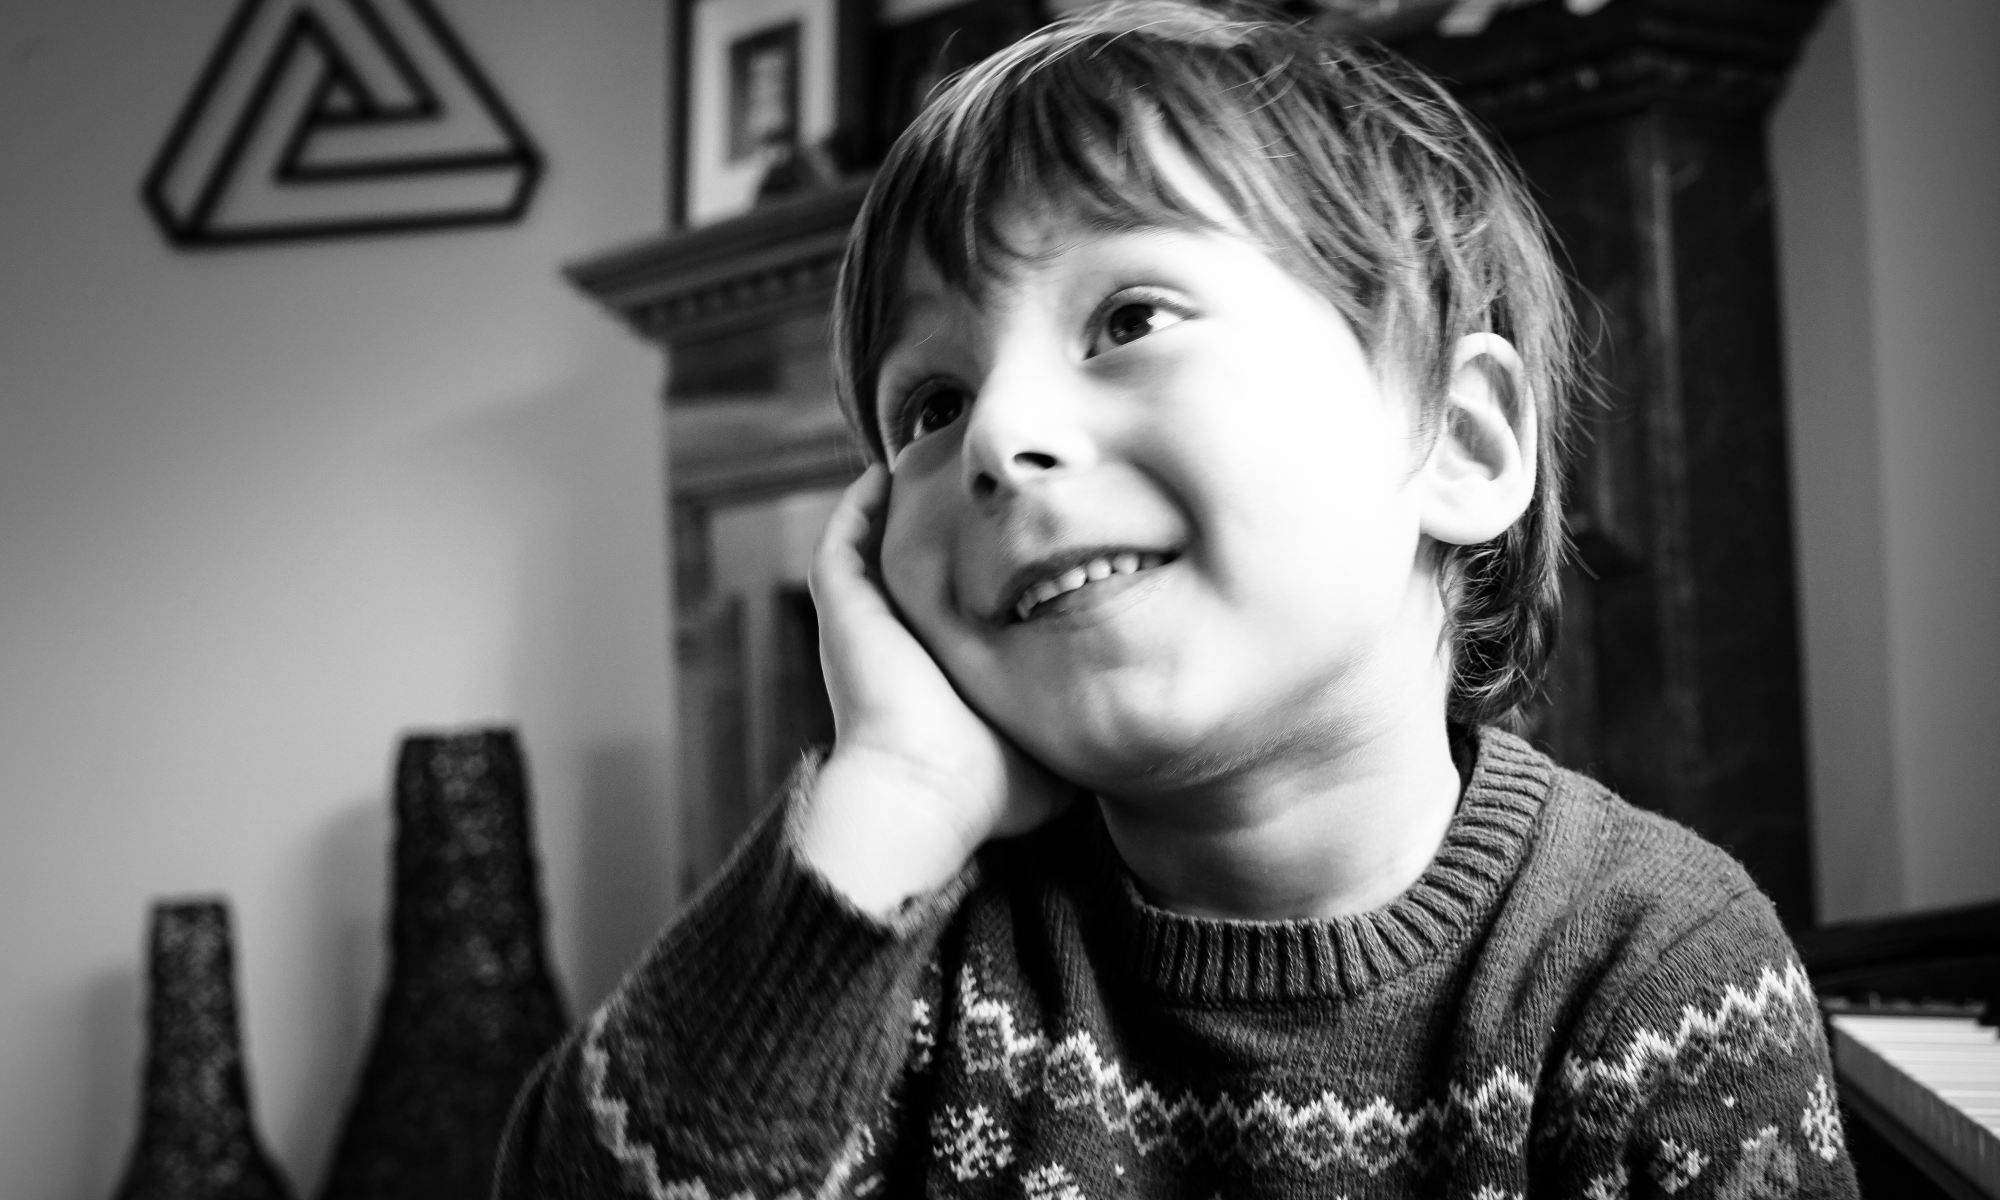 Smiling boy resting on his hand using his imagination